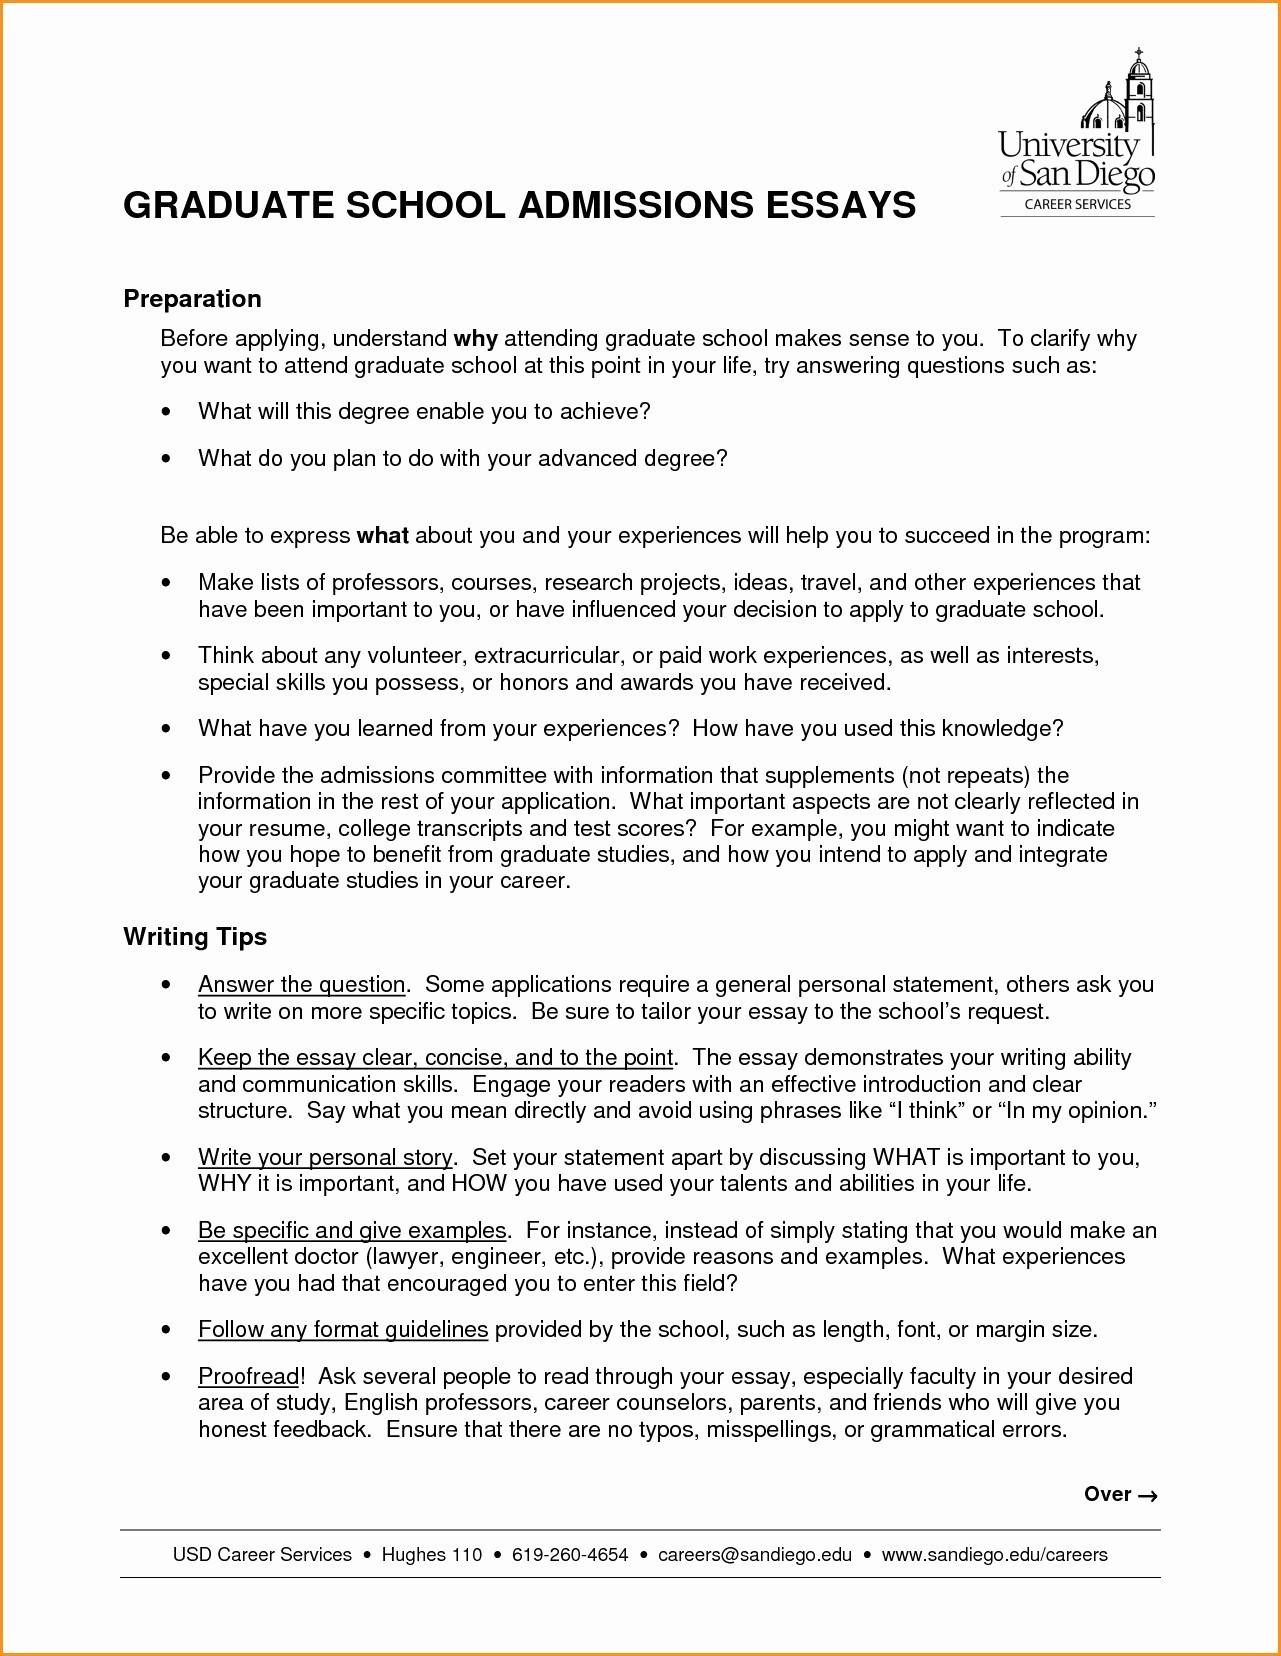 020 Essay Example Standard Format Writing Personal Latest Student Valid Elegant Recent Graduate Cover Letter Impressive Apa Essay/report For Ielts Full